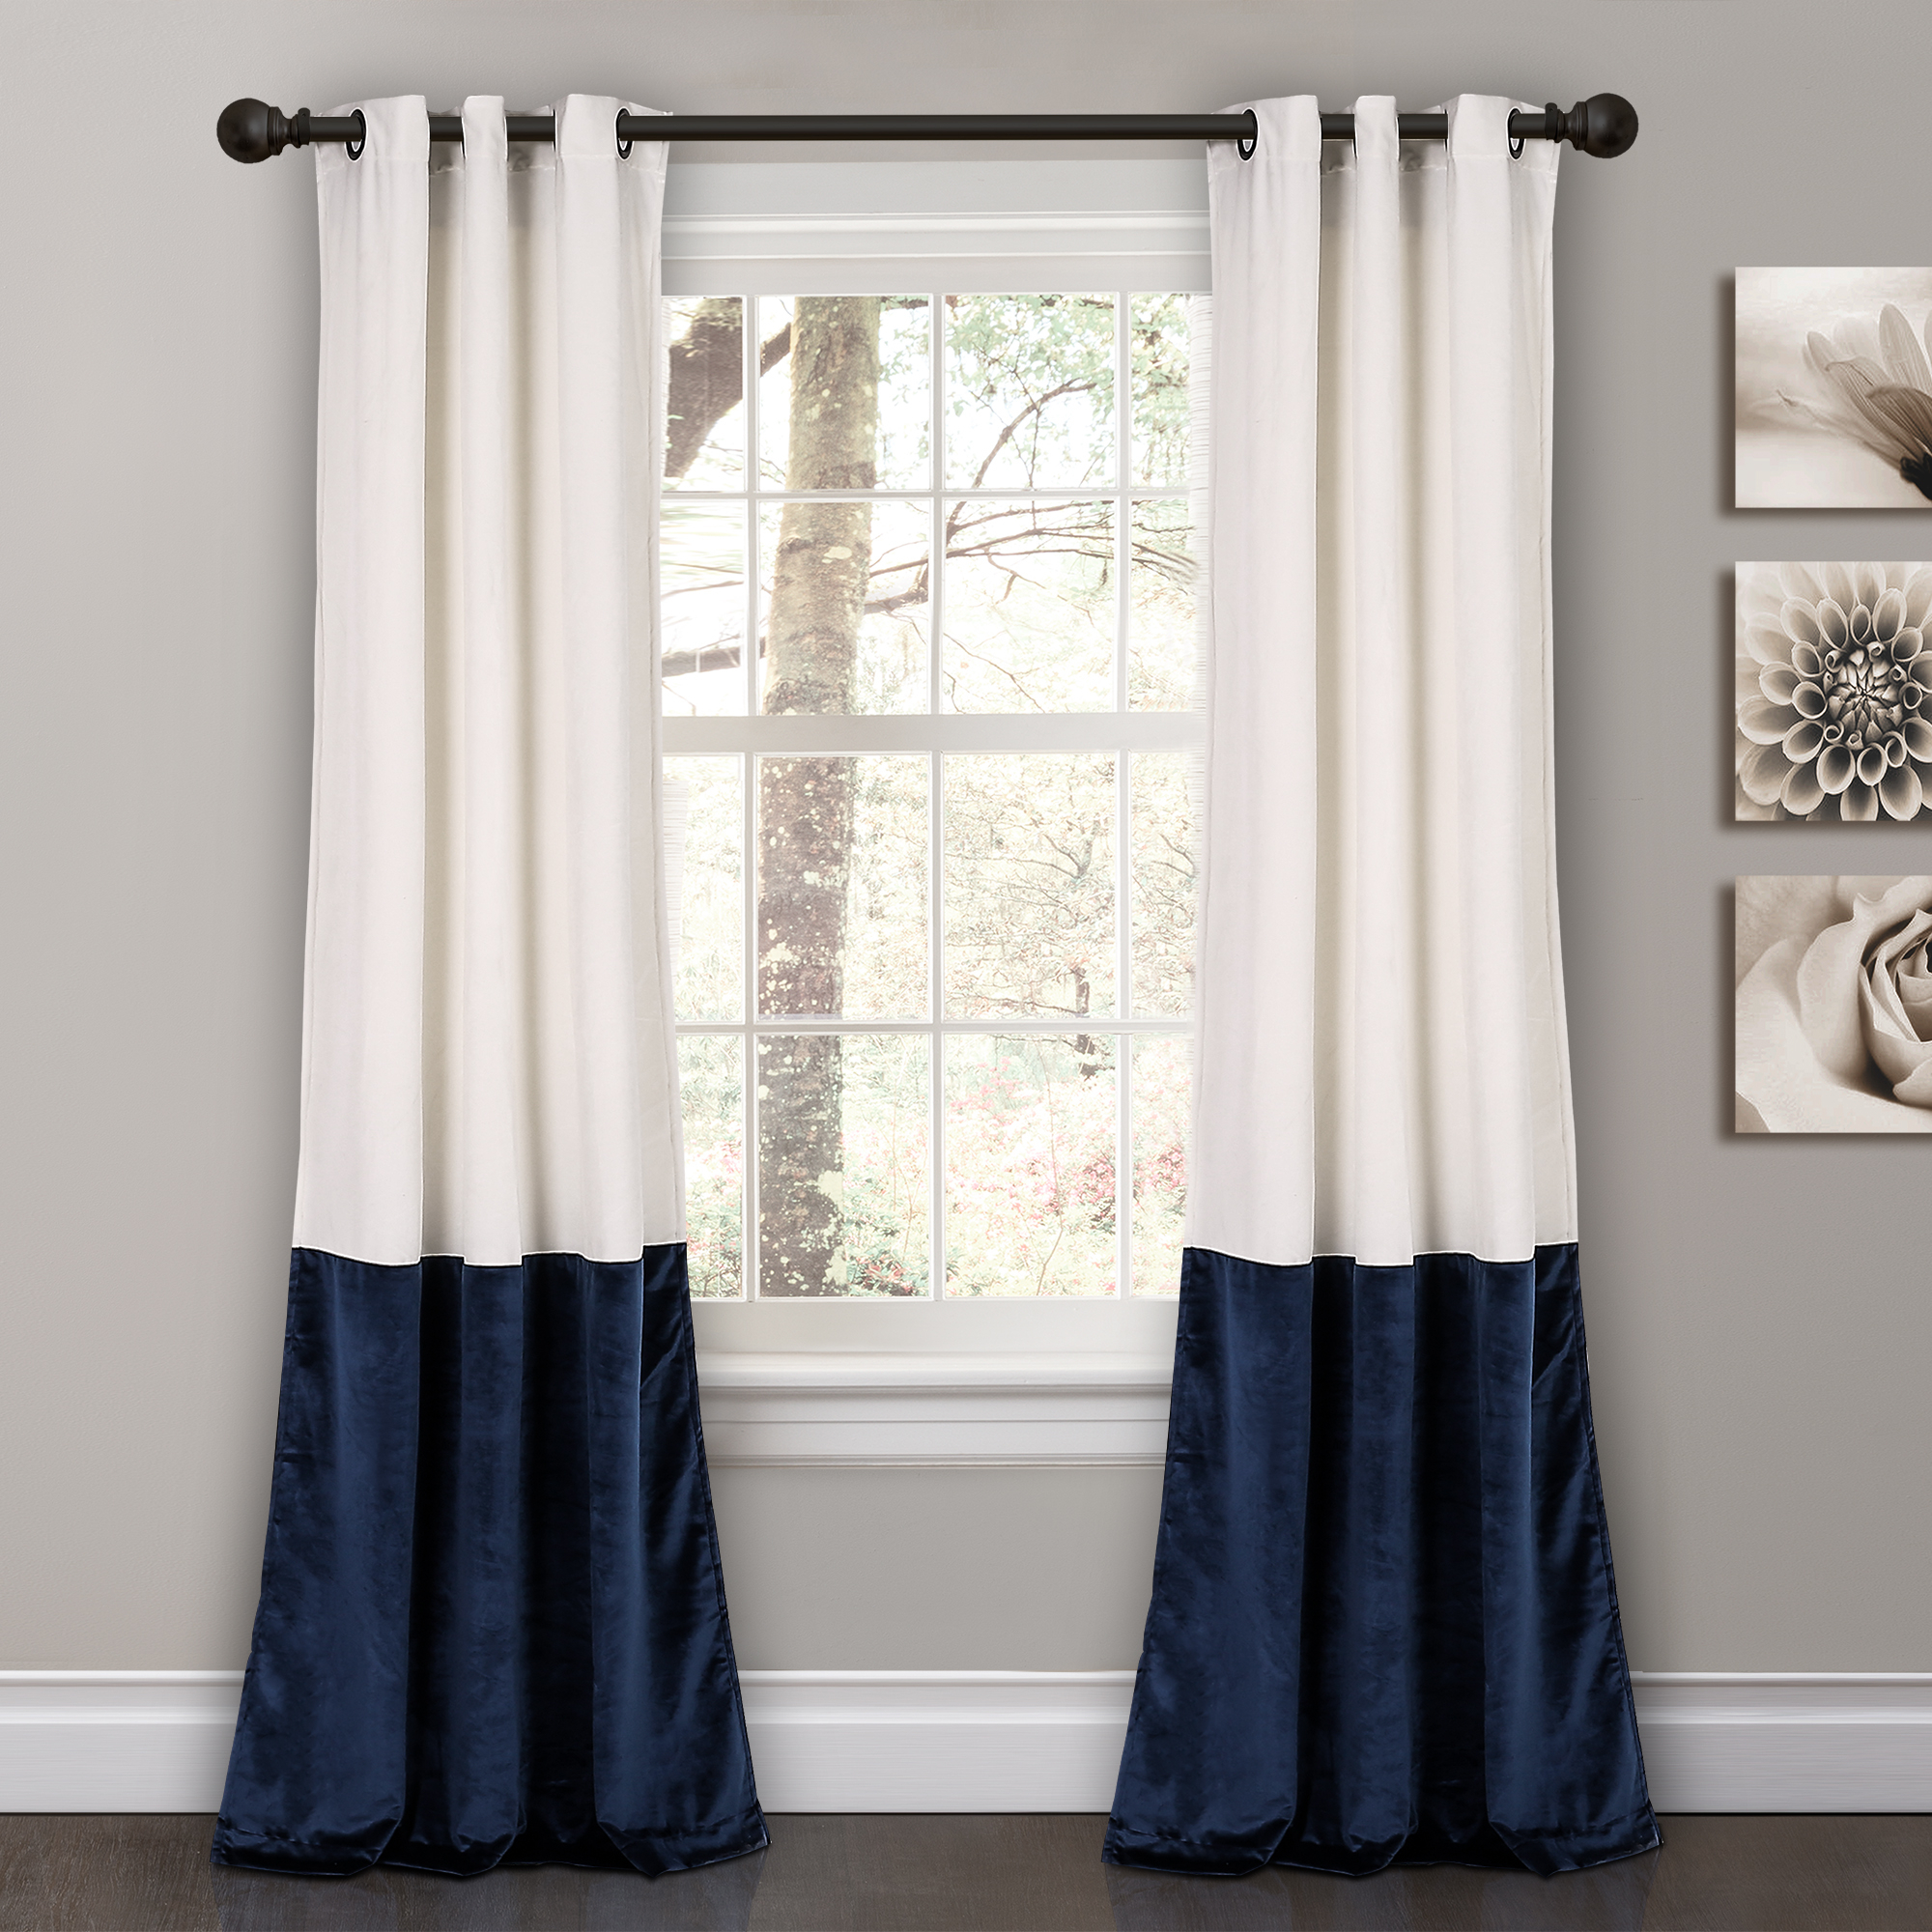 "Details About Prima Velvet Color Block Room Darkening Window Curtain Panel Pair, 84"" X 38"" Inside Cynthia Jacobean Room Darkening Curtain Panel Pairs (View 7 of 20)"